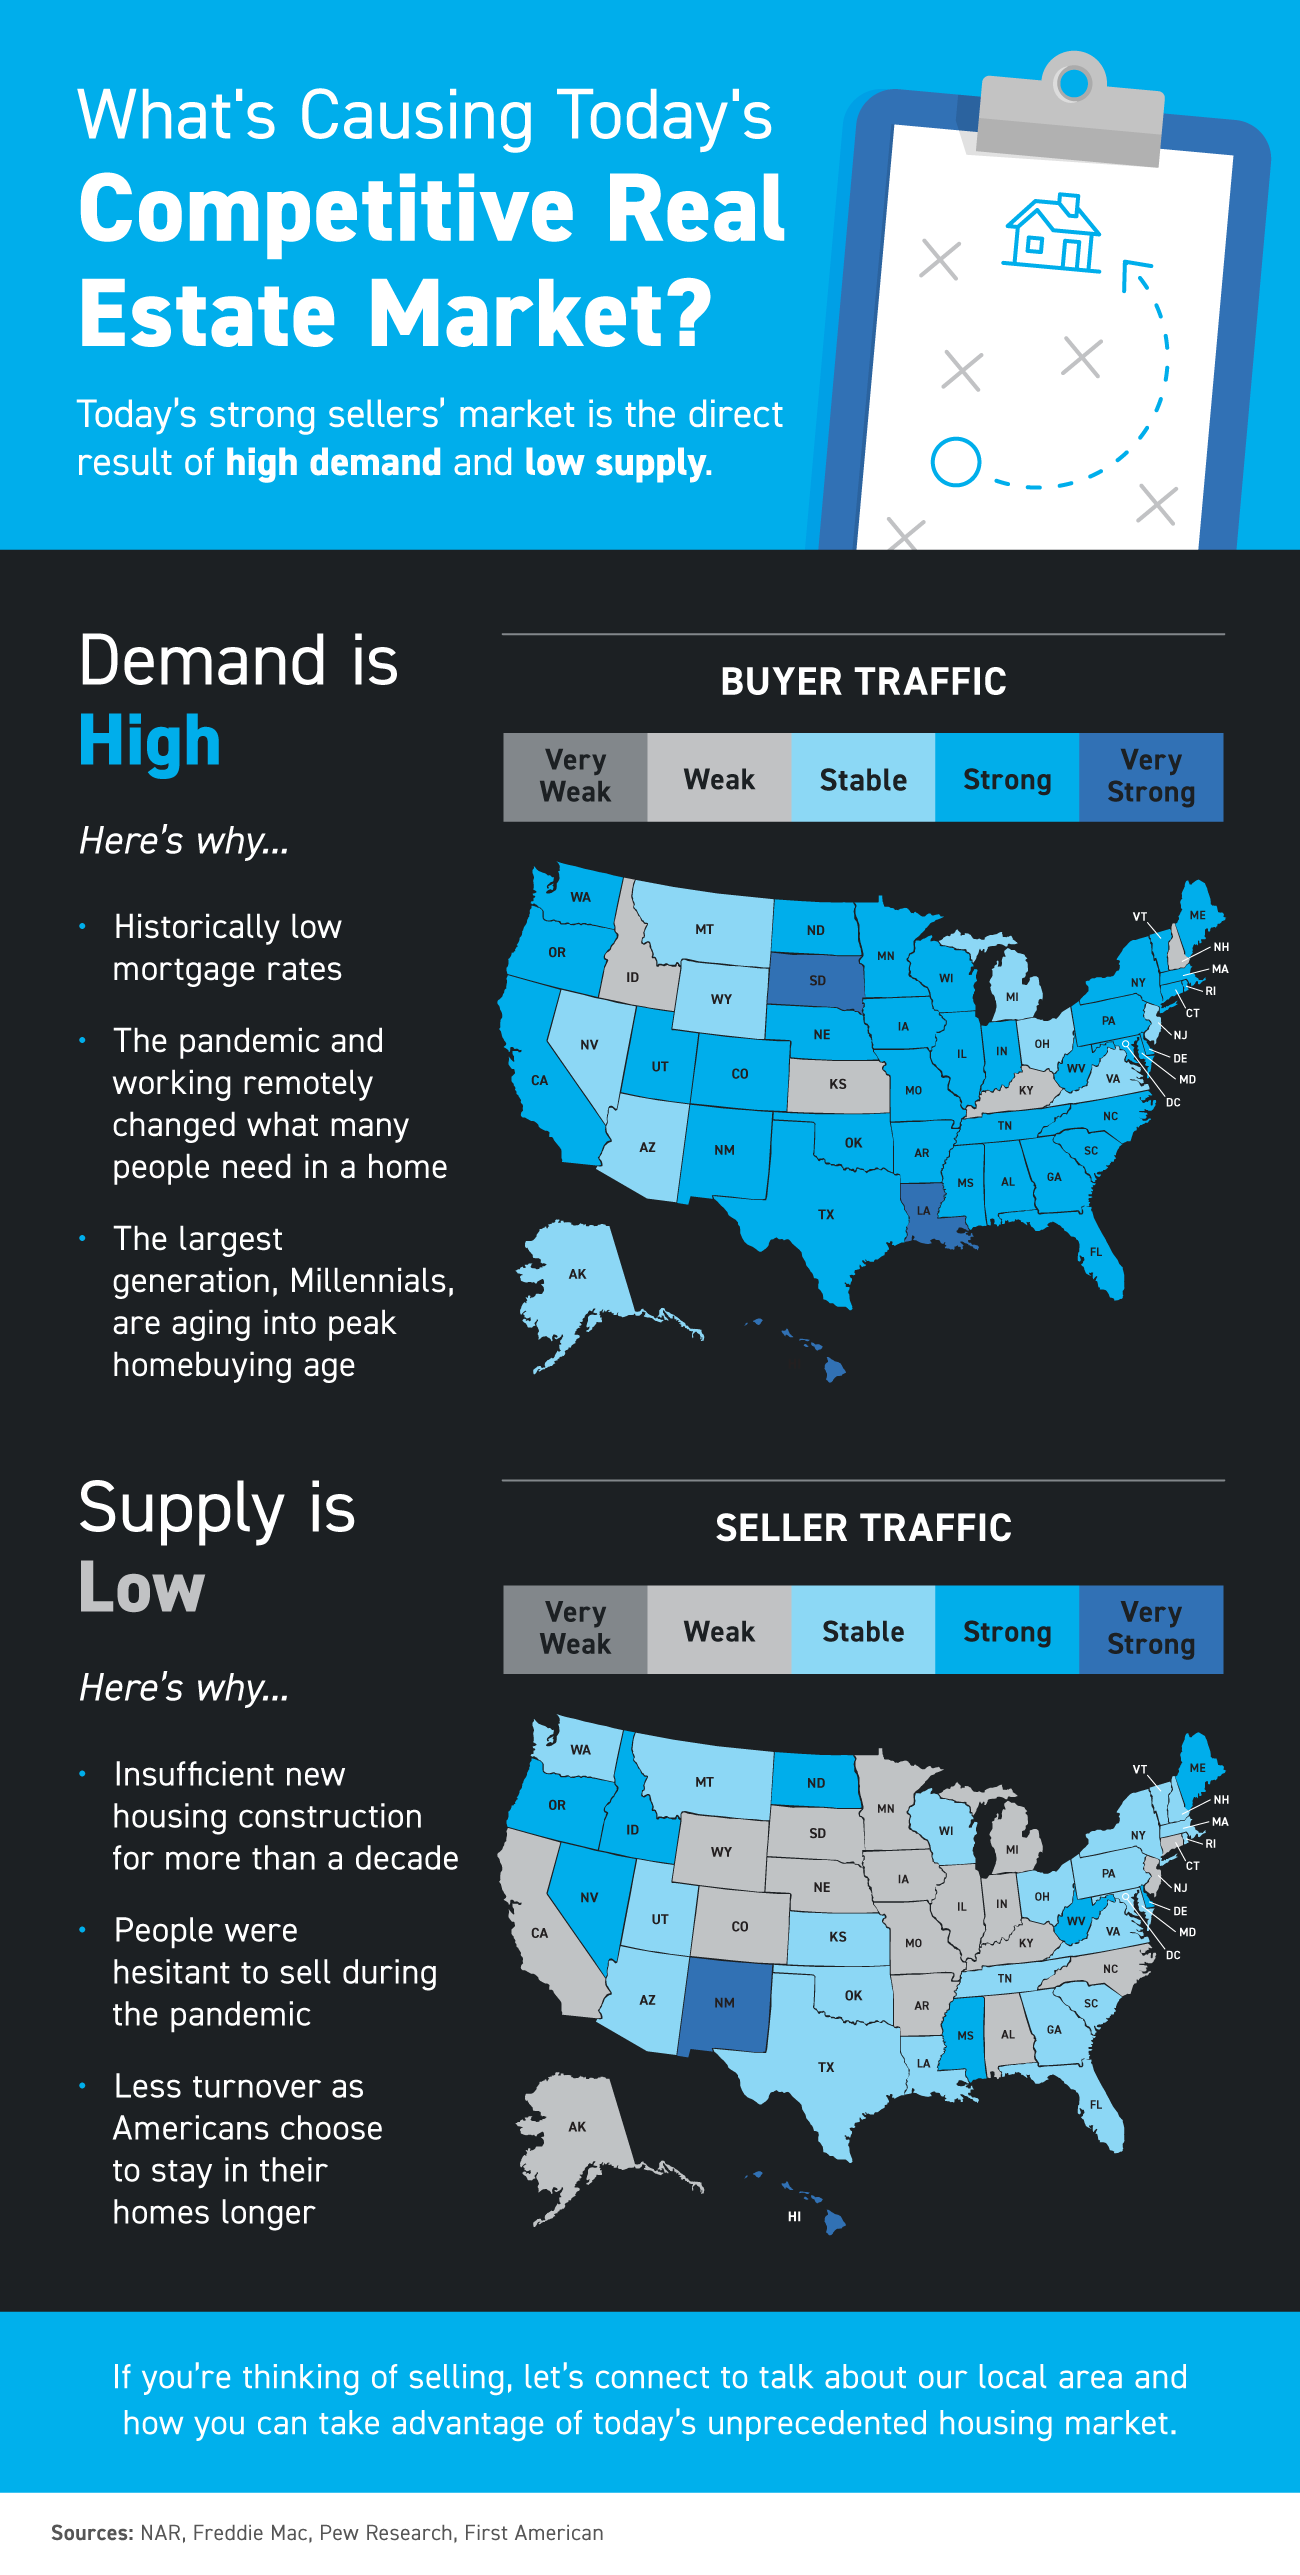 20211008-MEM What's Causing Today's Competitive Real Estate Market? [INFOGRAPHIC]